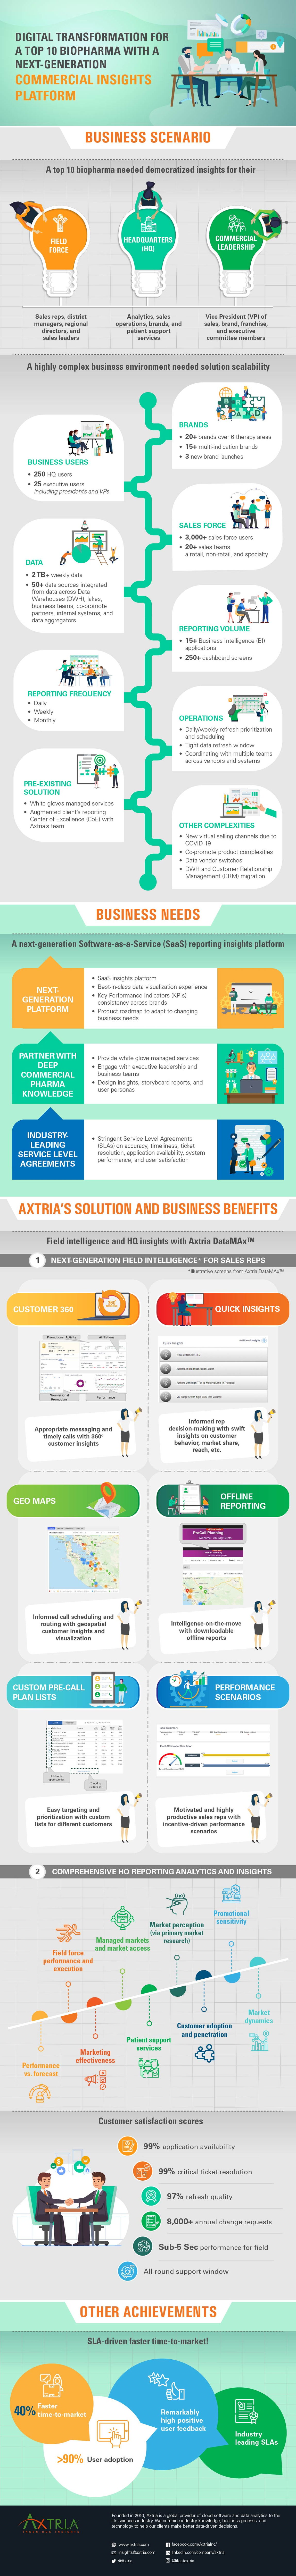 Axtria-Insights-Digital-Transformation-For-A-Top-10-Biopharma-With-A-Next-Generation-Commercial-Insights-Platform